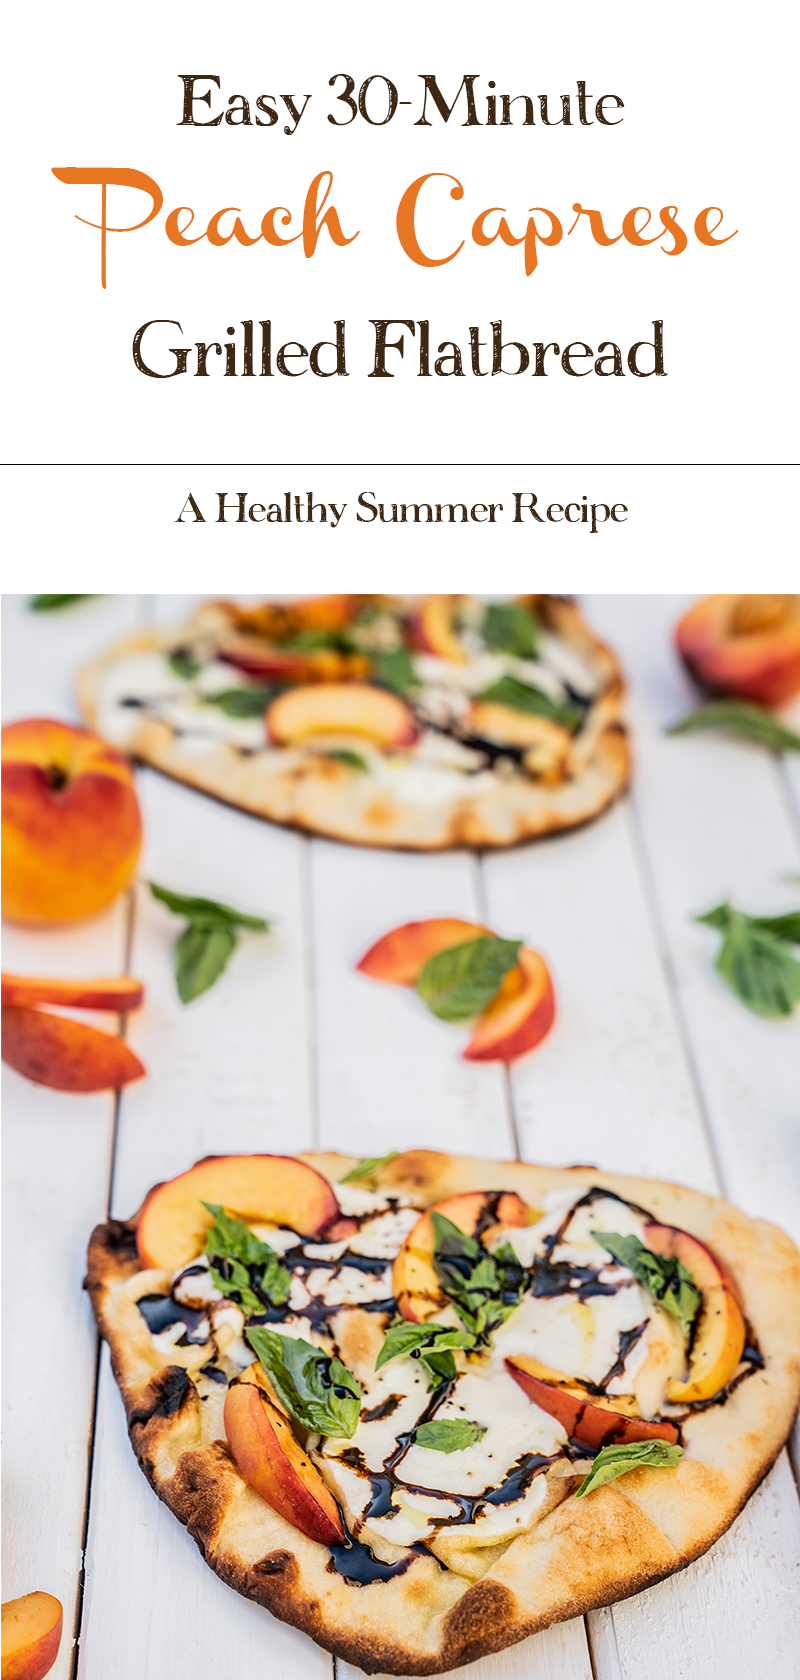 Easy-30-Minute-Peach-Caprese-Grilled-Flatbread